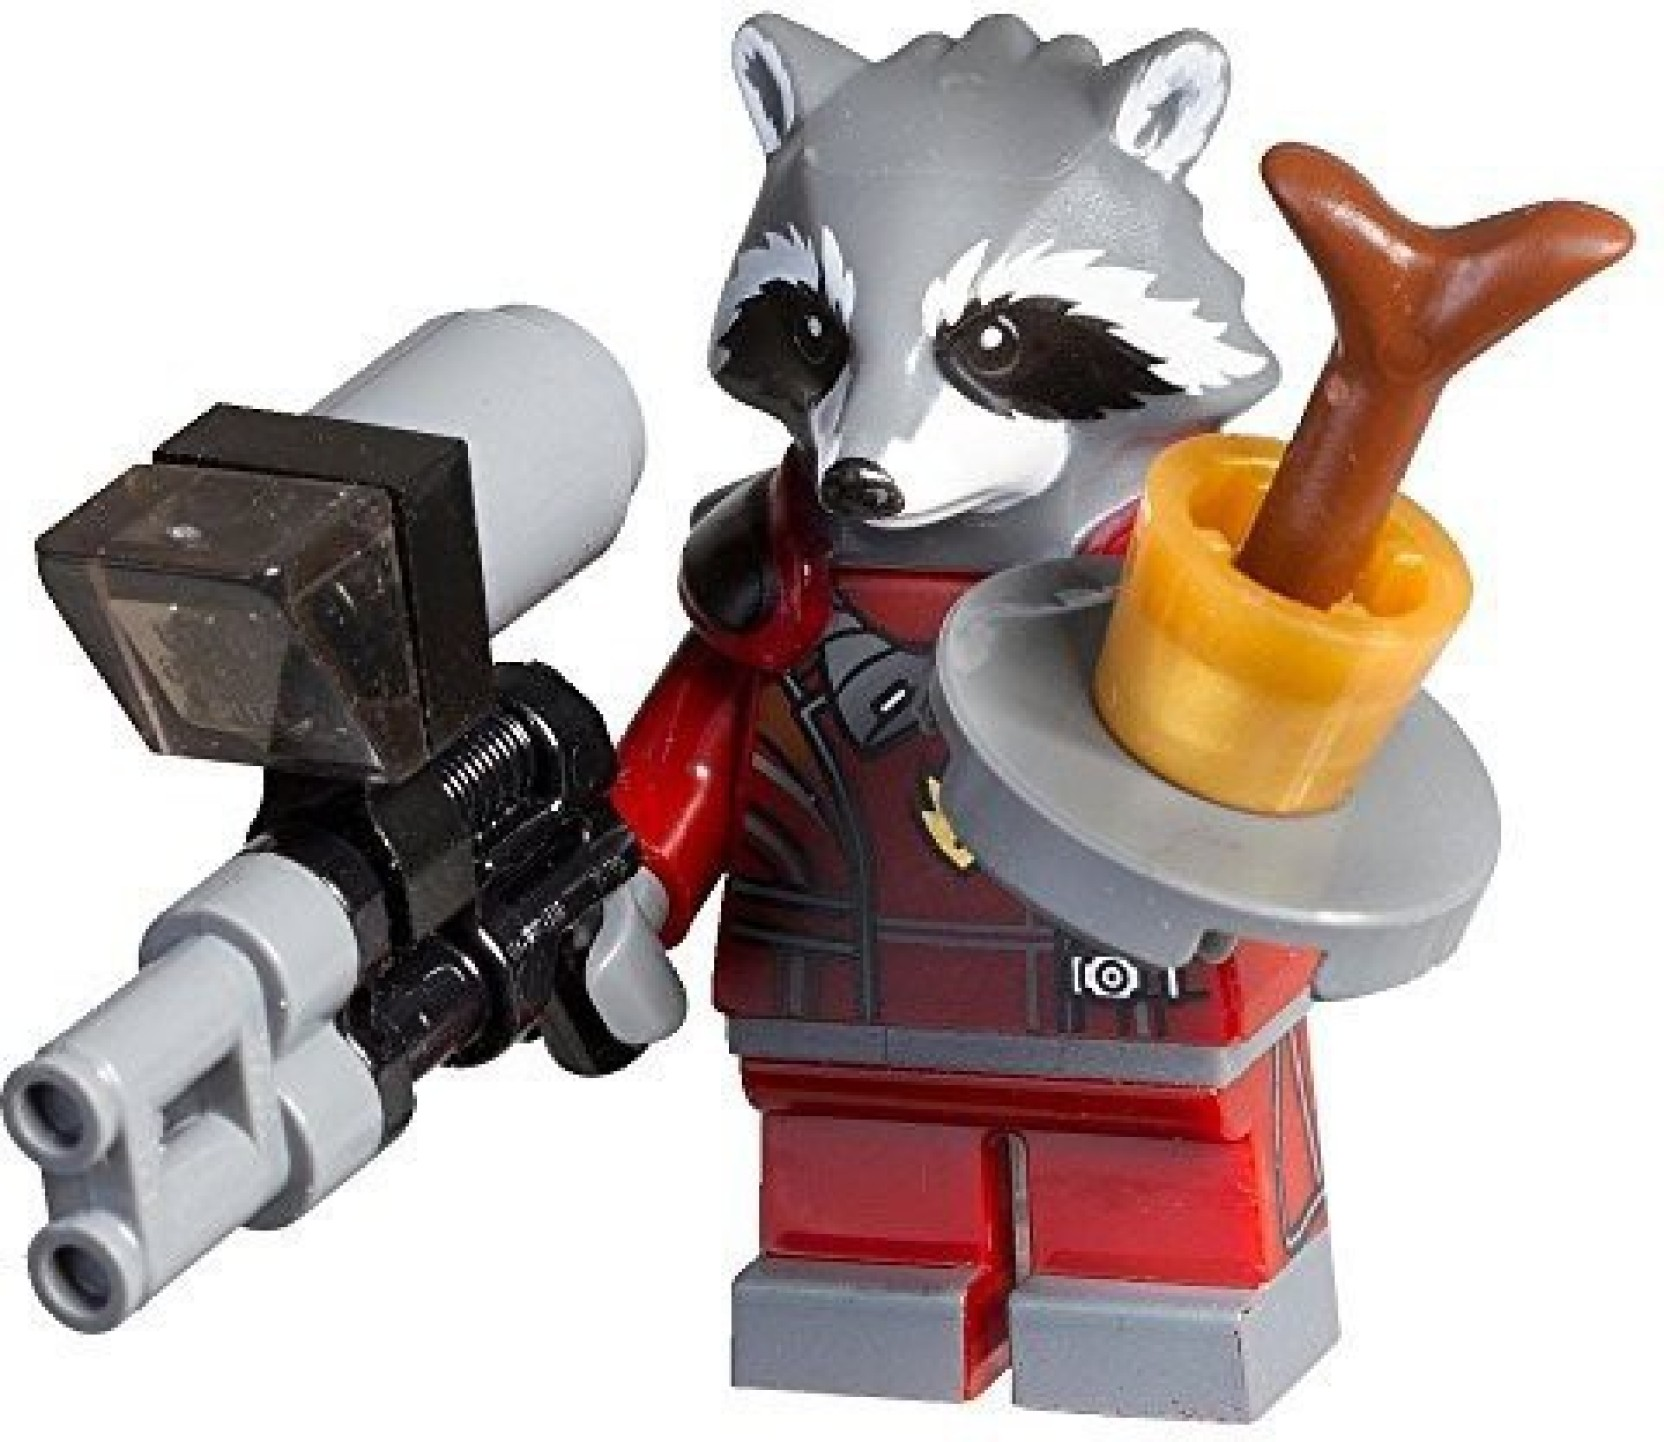 Guardians Of The Galaxy Lego Exclusive Rocket Raccoon Figure Super Deluxe Vinyl Bagged Add To Cart